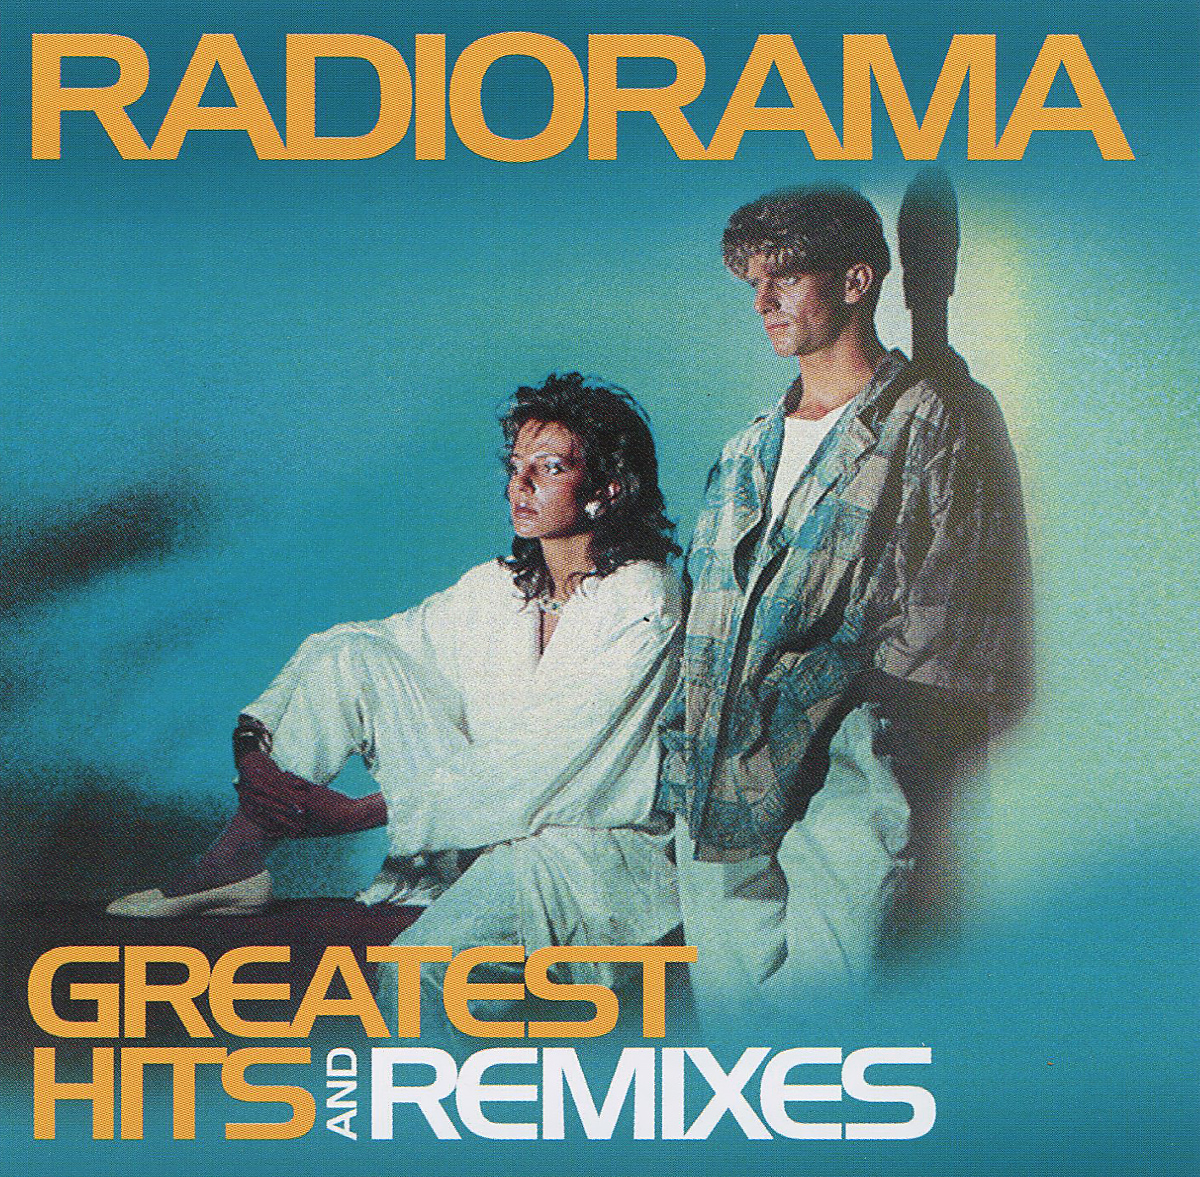 Radiorama Radiorama. Greatest Hits & Remixes (2 CD) кэрри андервуд carrie underwood greatest hits decade 1 2 cd